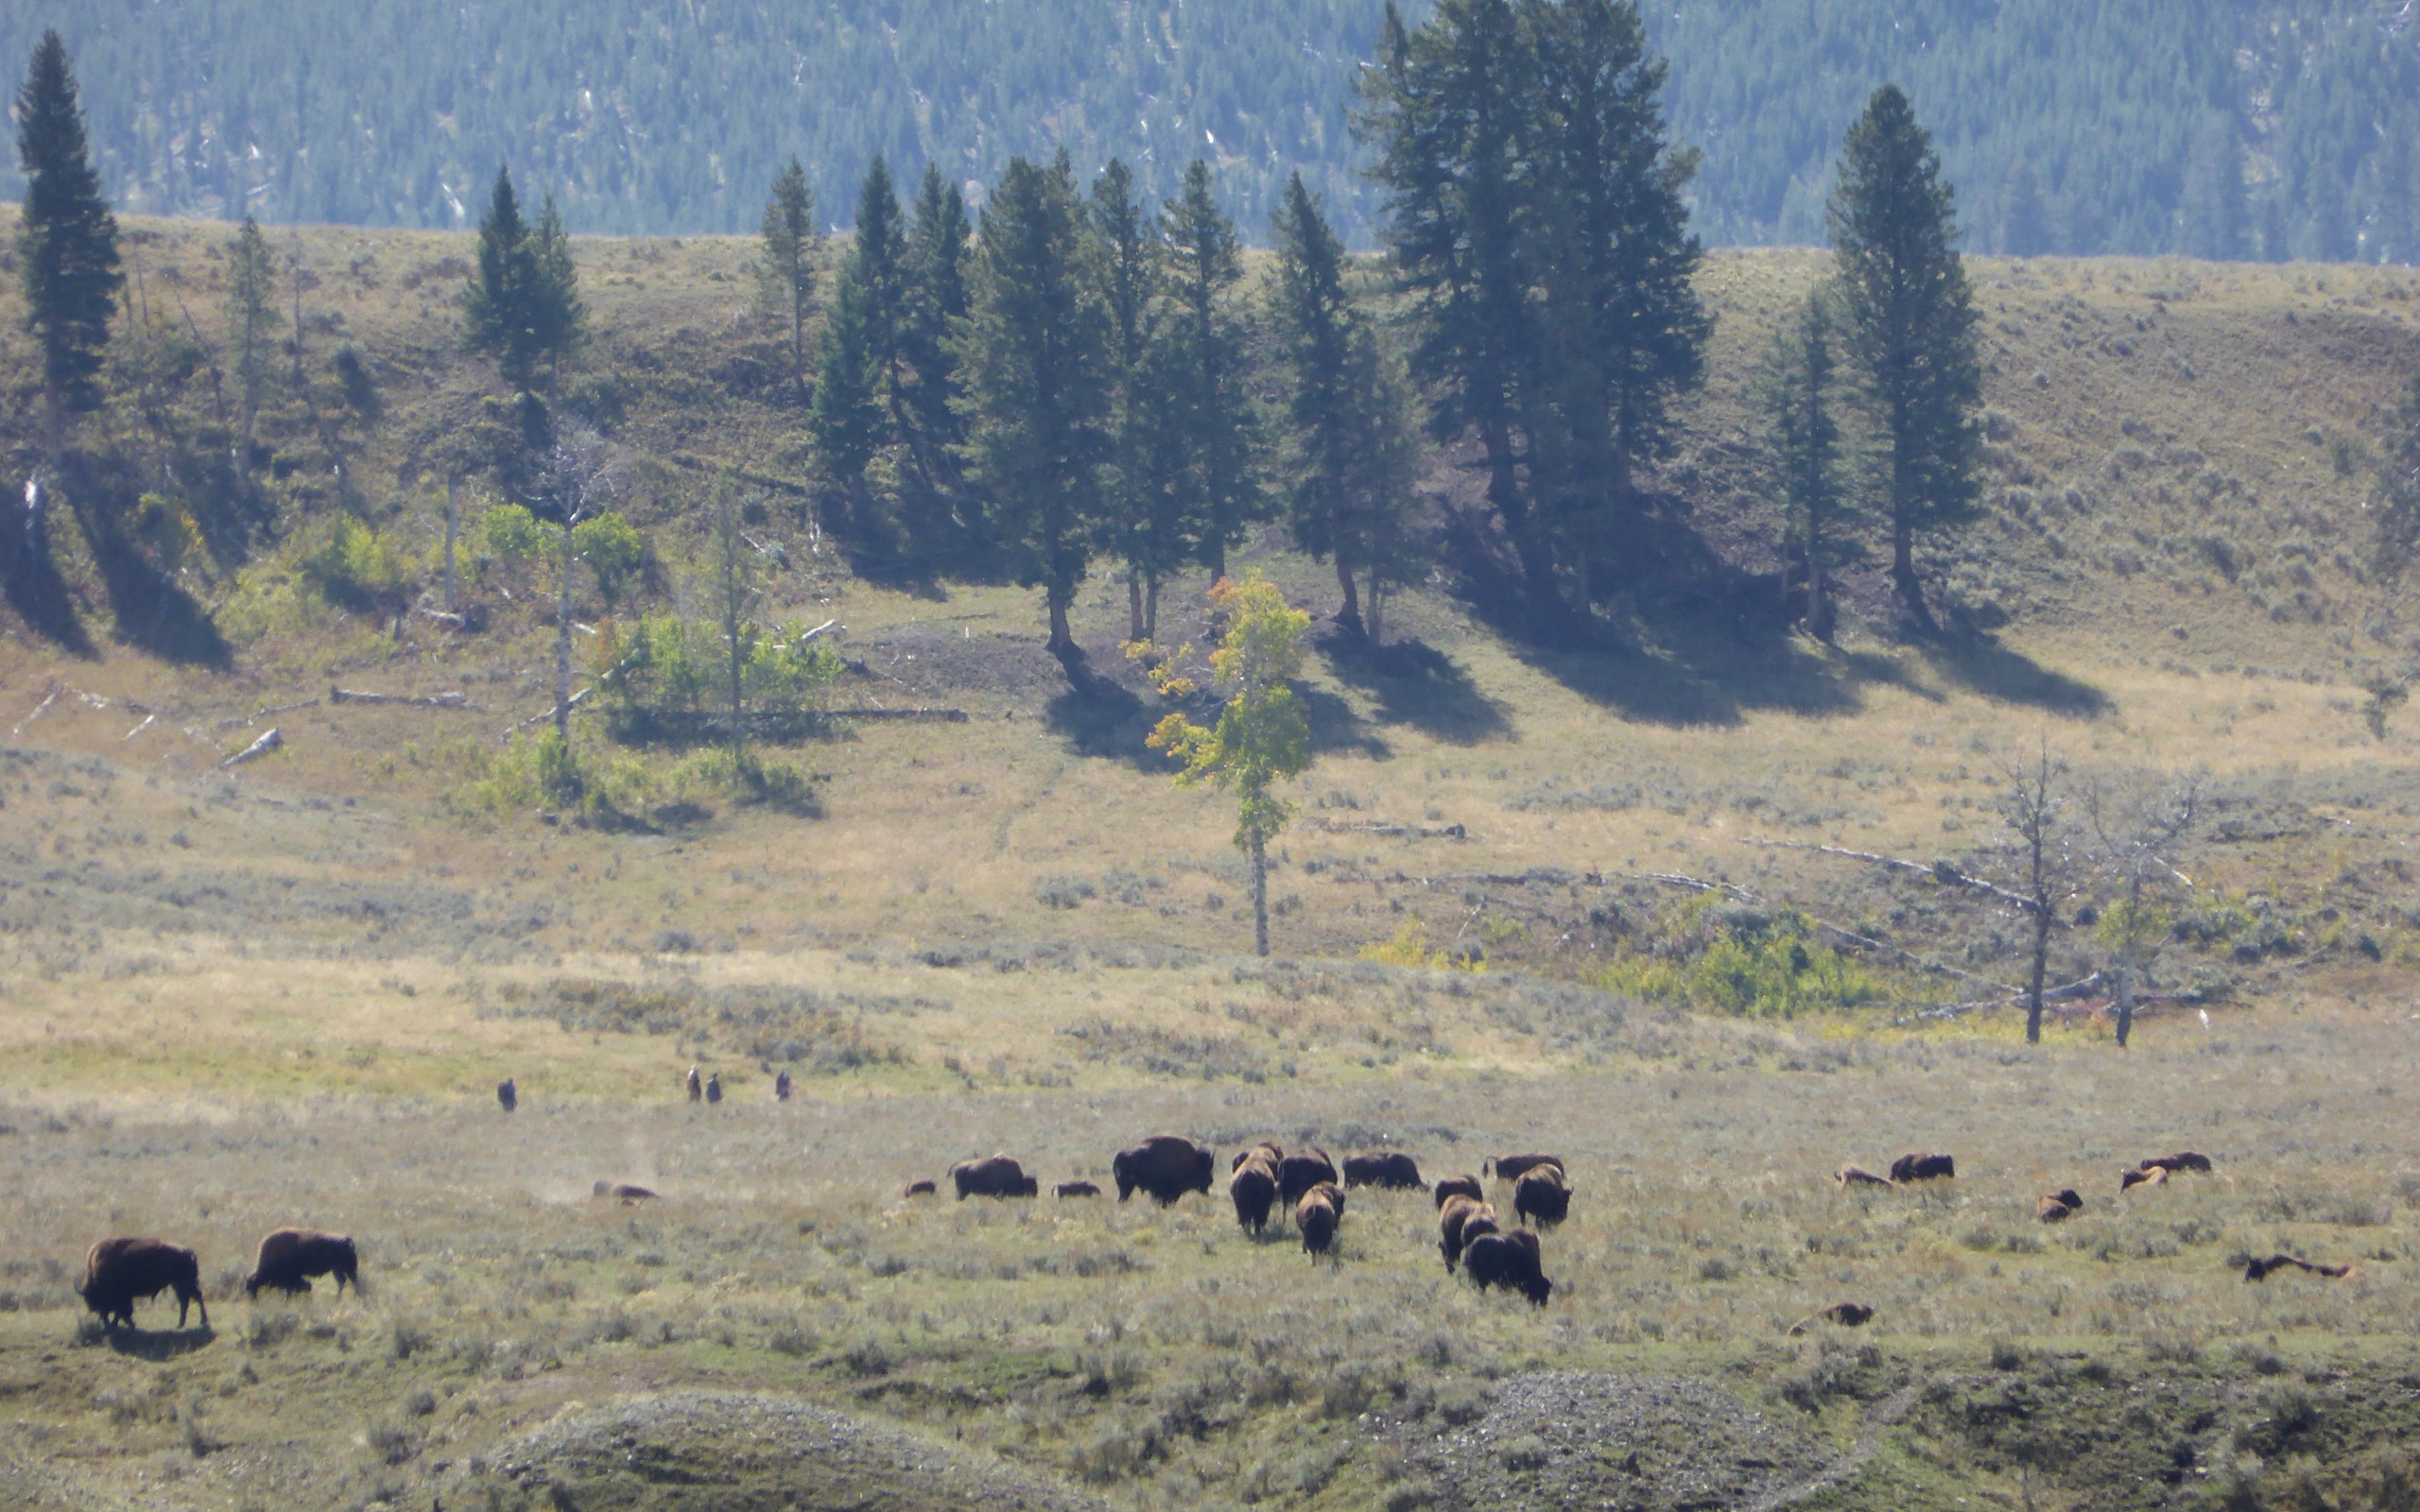 Kuddes met bizons in de Lamar Valley